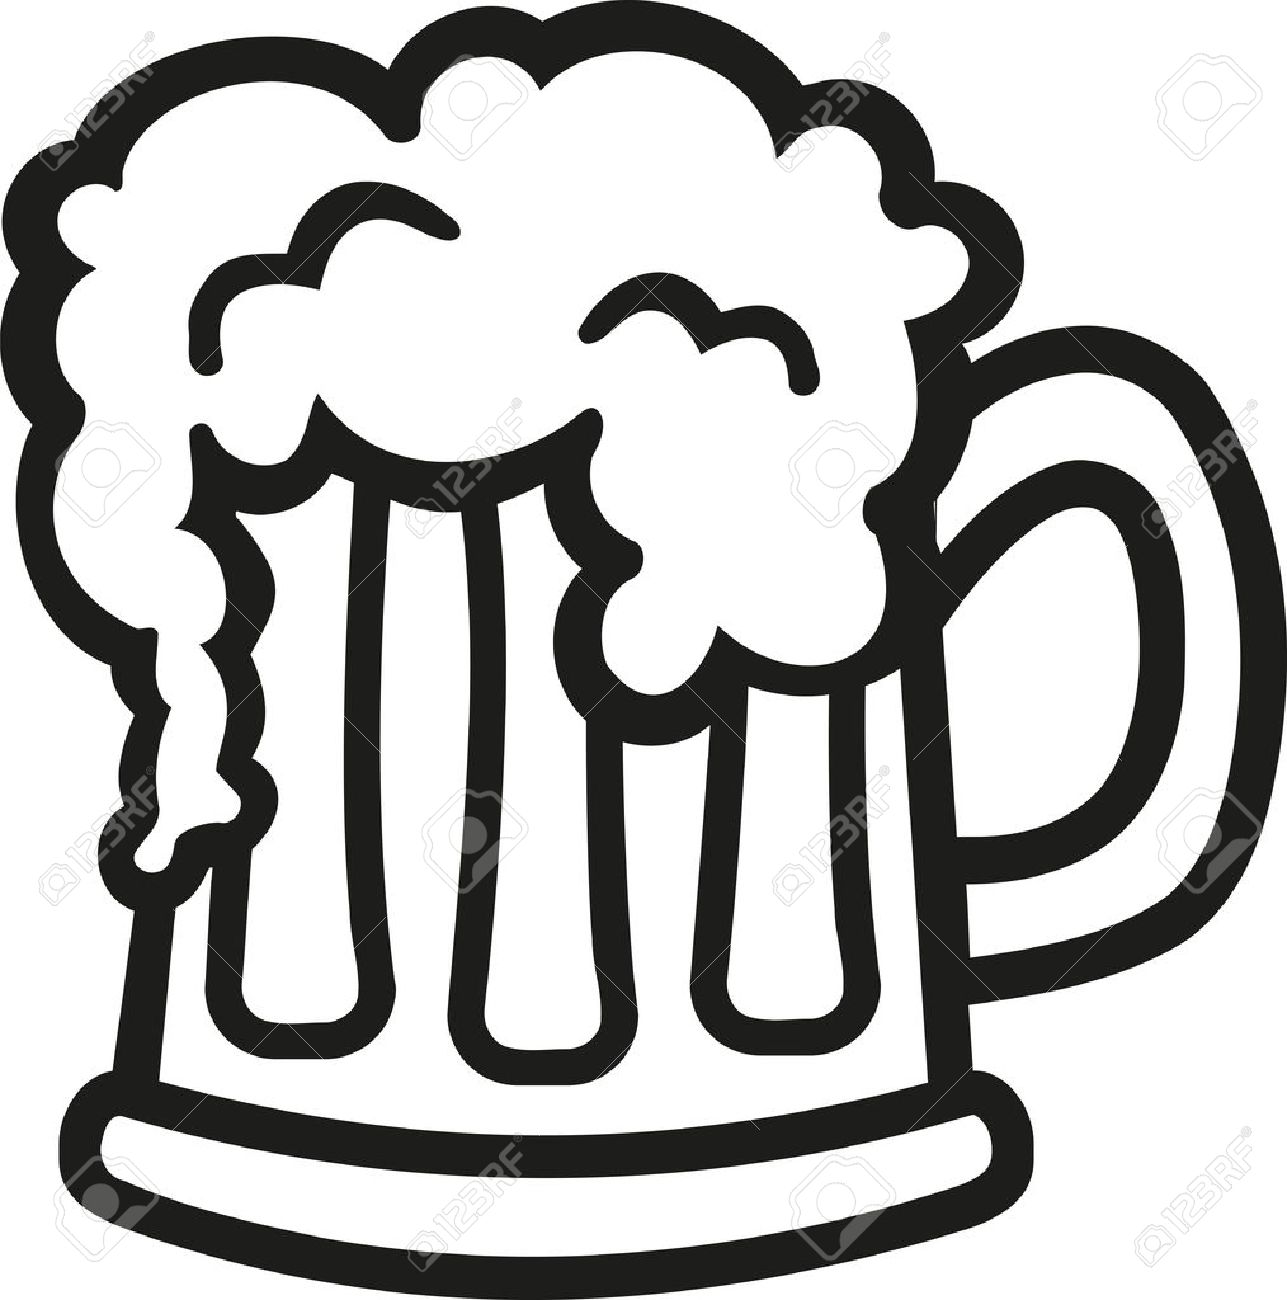 Beer stein clipart black and white banner royalty free library Beer clipart black and white 6 » Clipart Station banner royalty free library